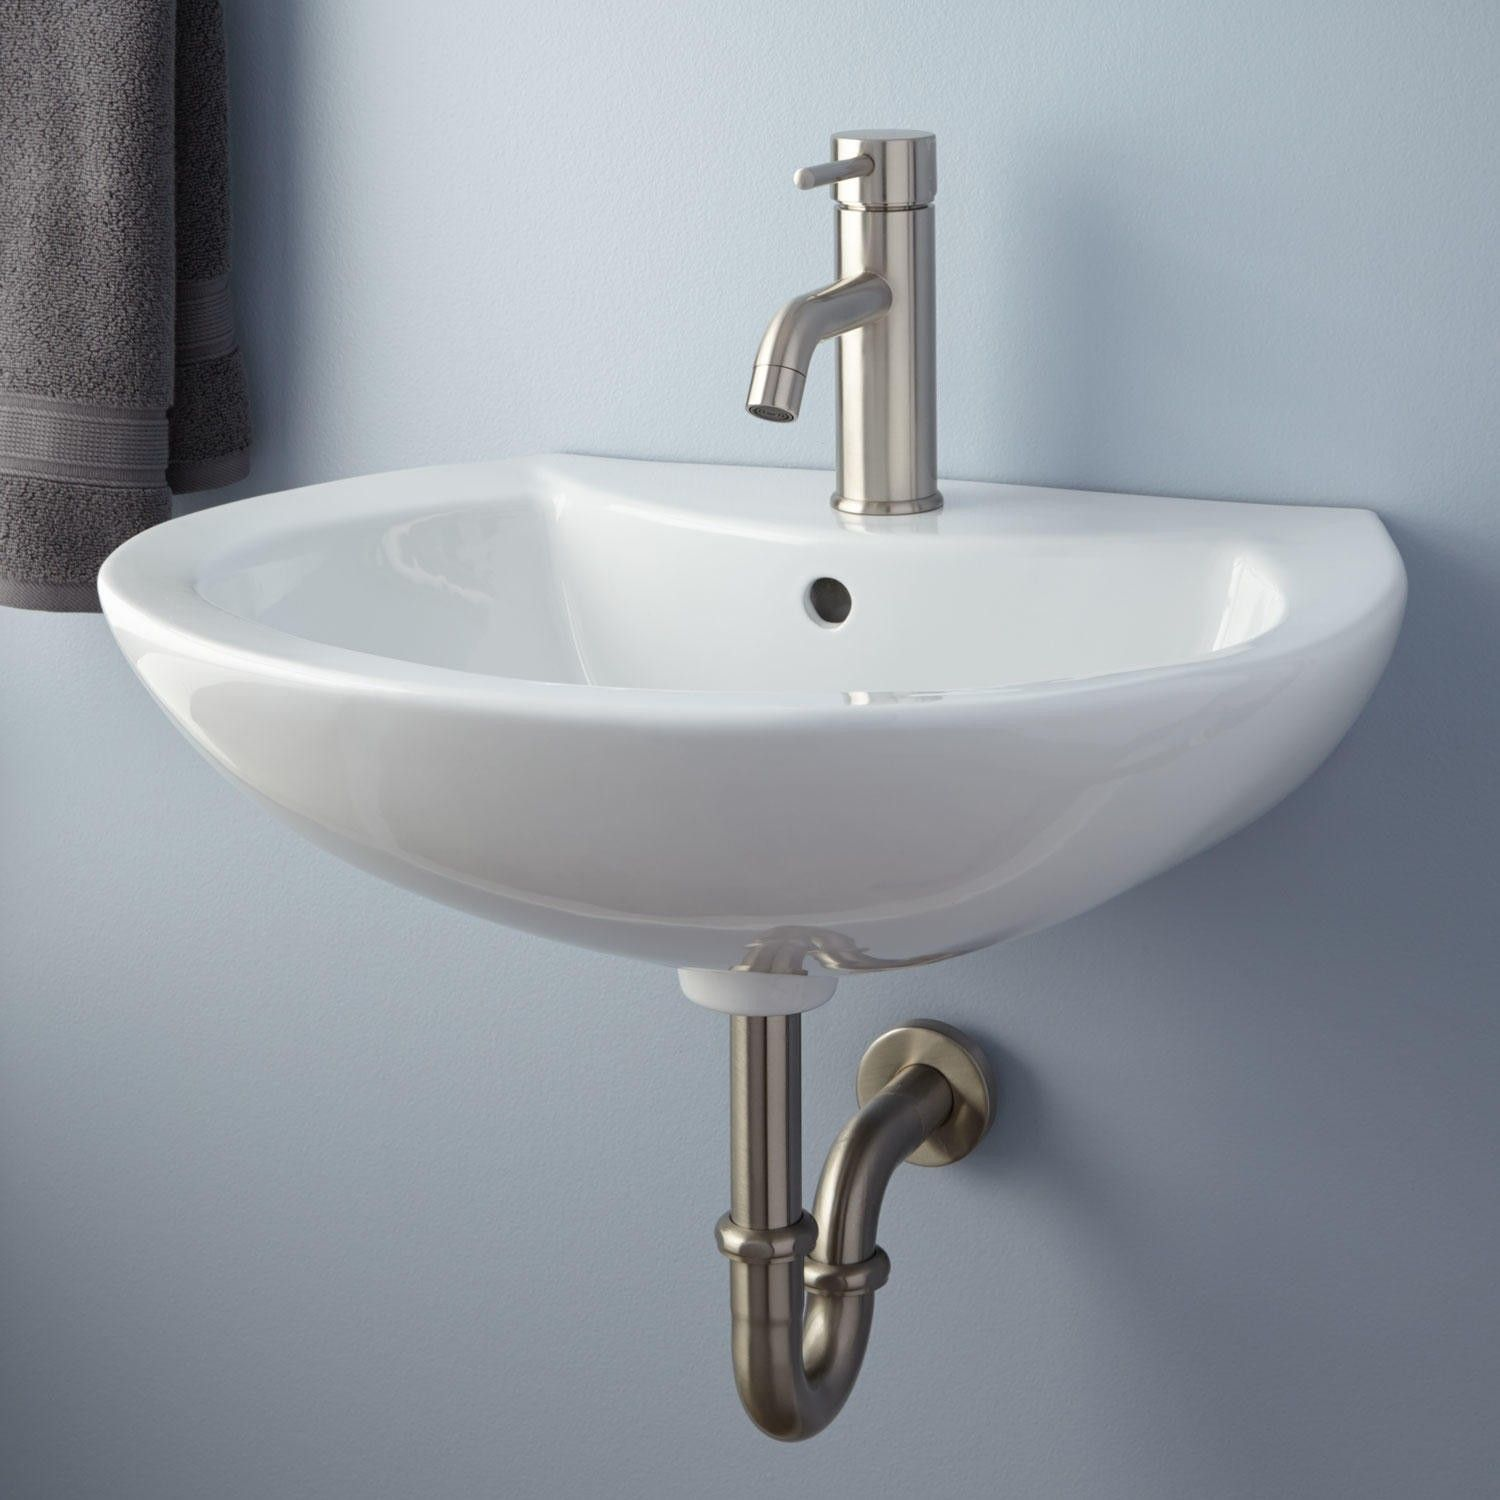 Maisie Porcelain Wall Mount Bathroom Sink Wall Mount The O 39 Jays And Faucets